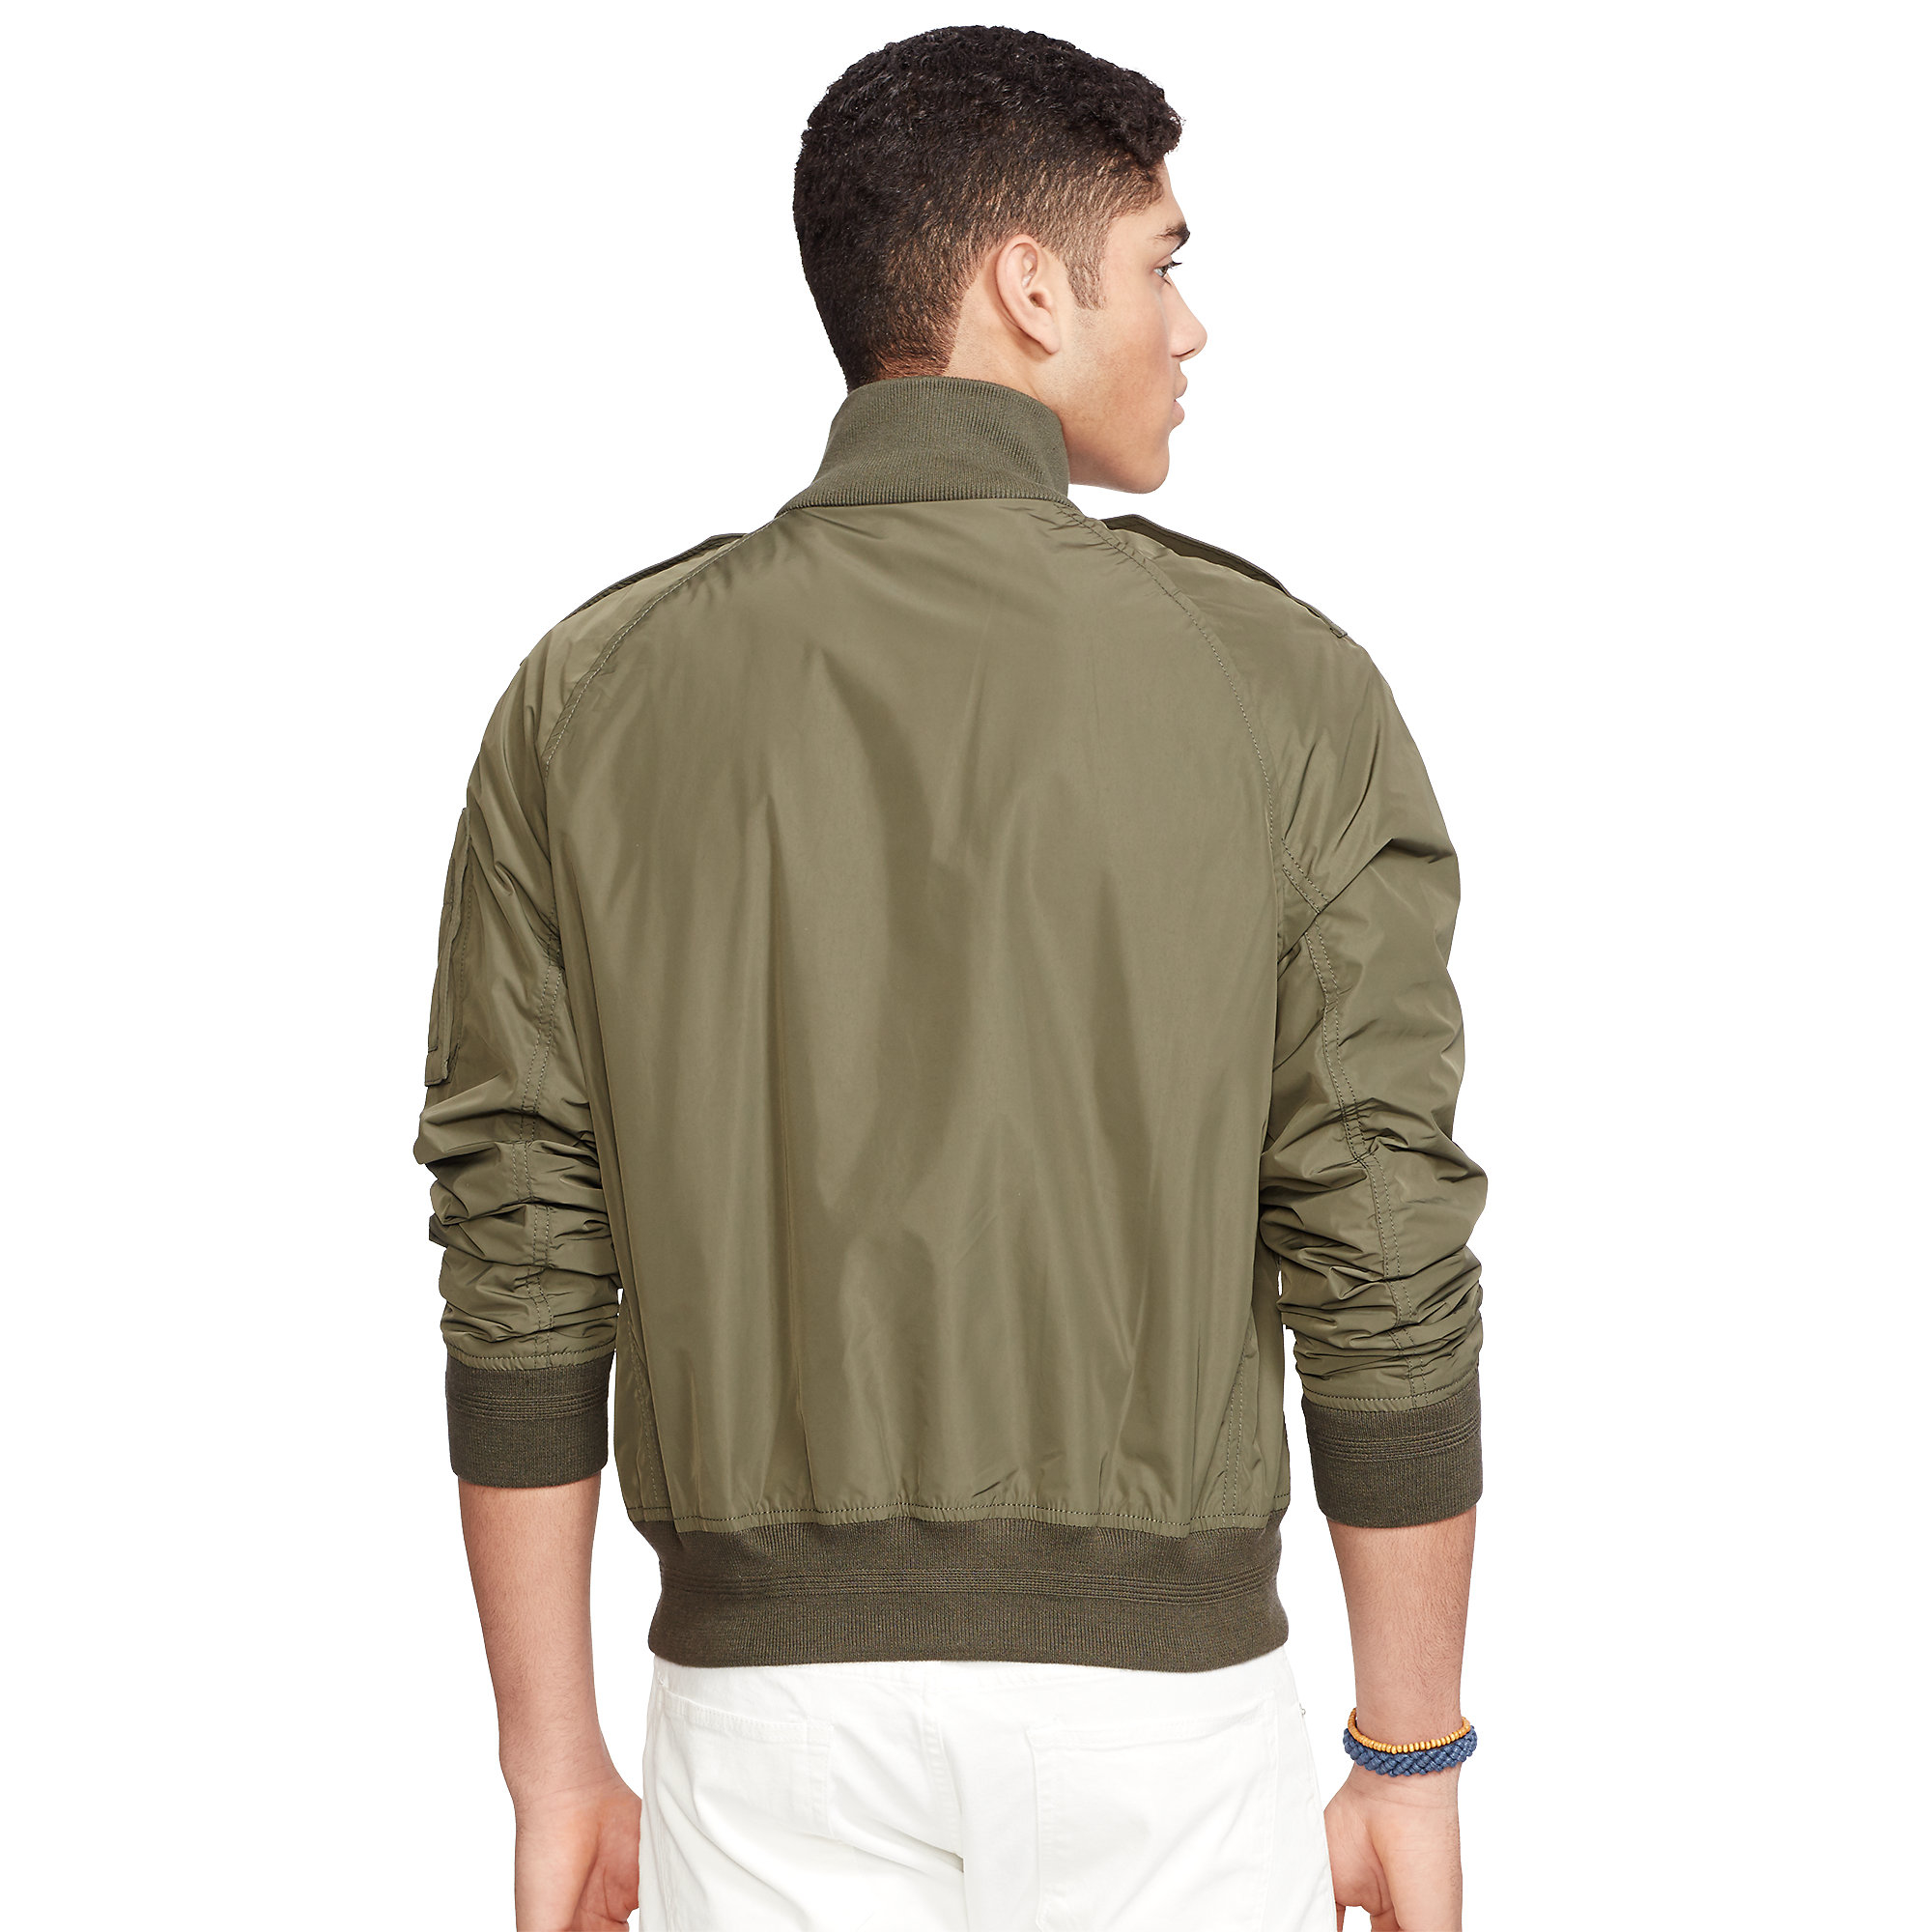 lyst polo ralph lauren bomber jacket in natural for men. Black Bedroom Furniture Sets. Home Design Ideas